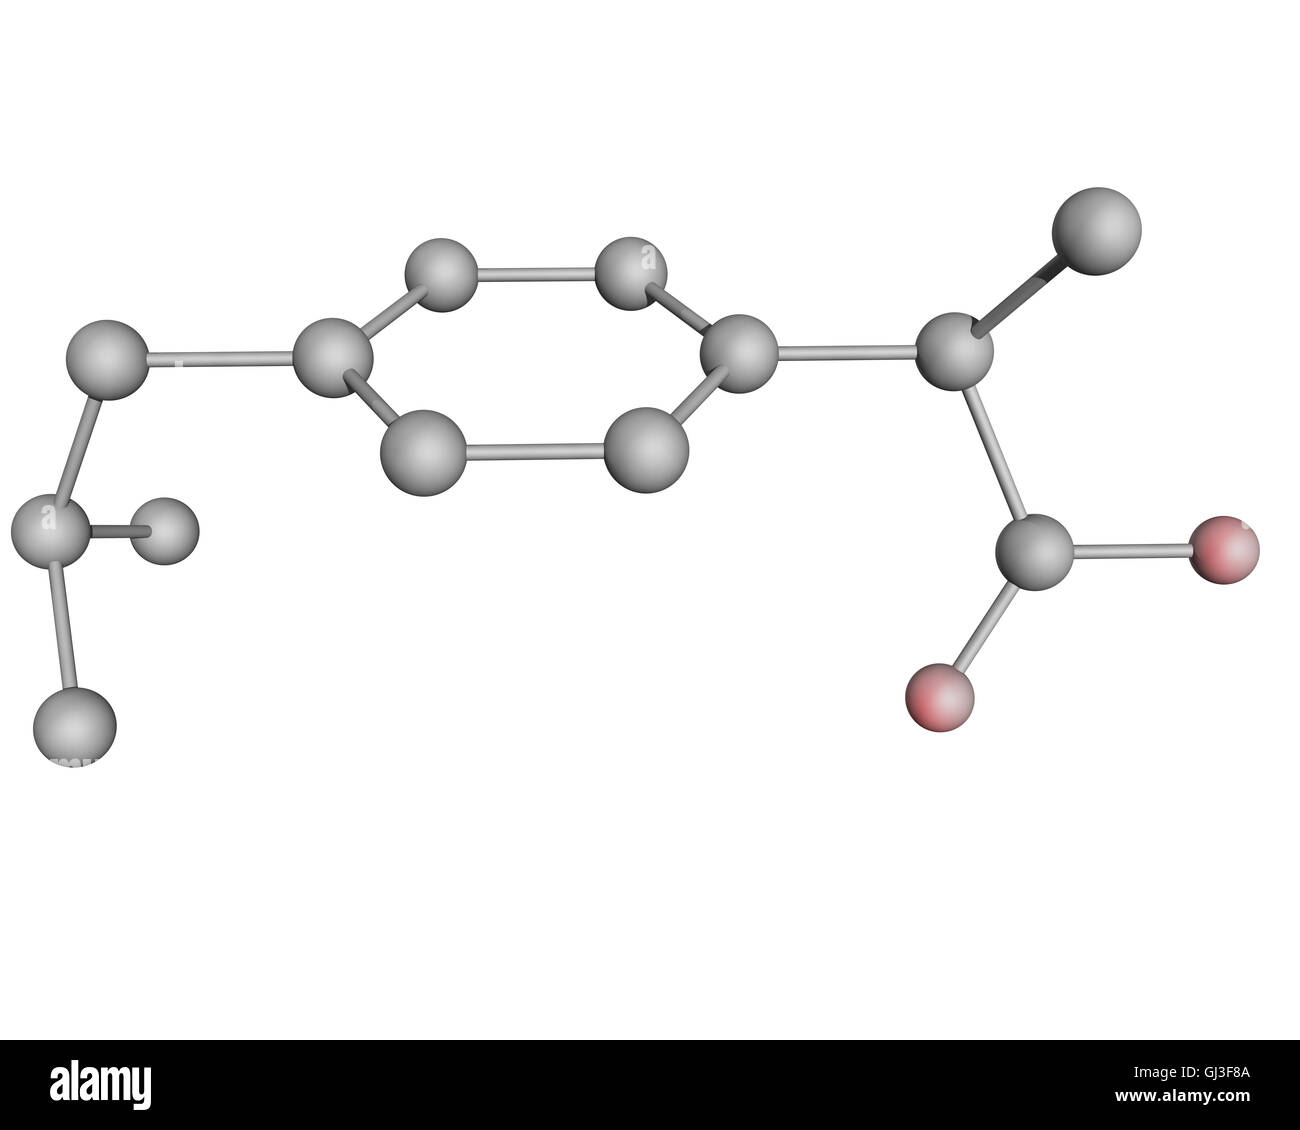 Hydrogen Oxygen Stock Photos Images Alamy 3d Atom Diagram This Is Our First Illustration Of Ibuprofen Molecule With Atoms In Red Color Atomsnot Shown